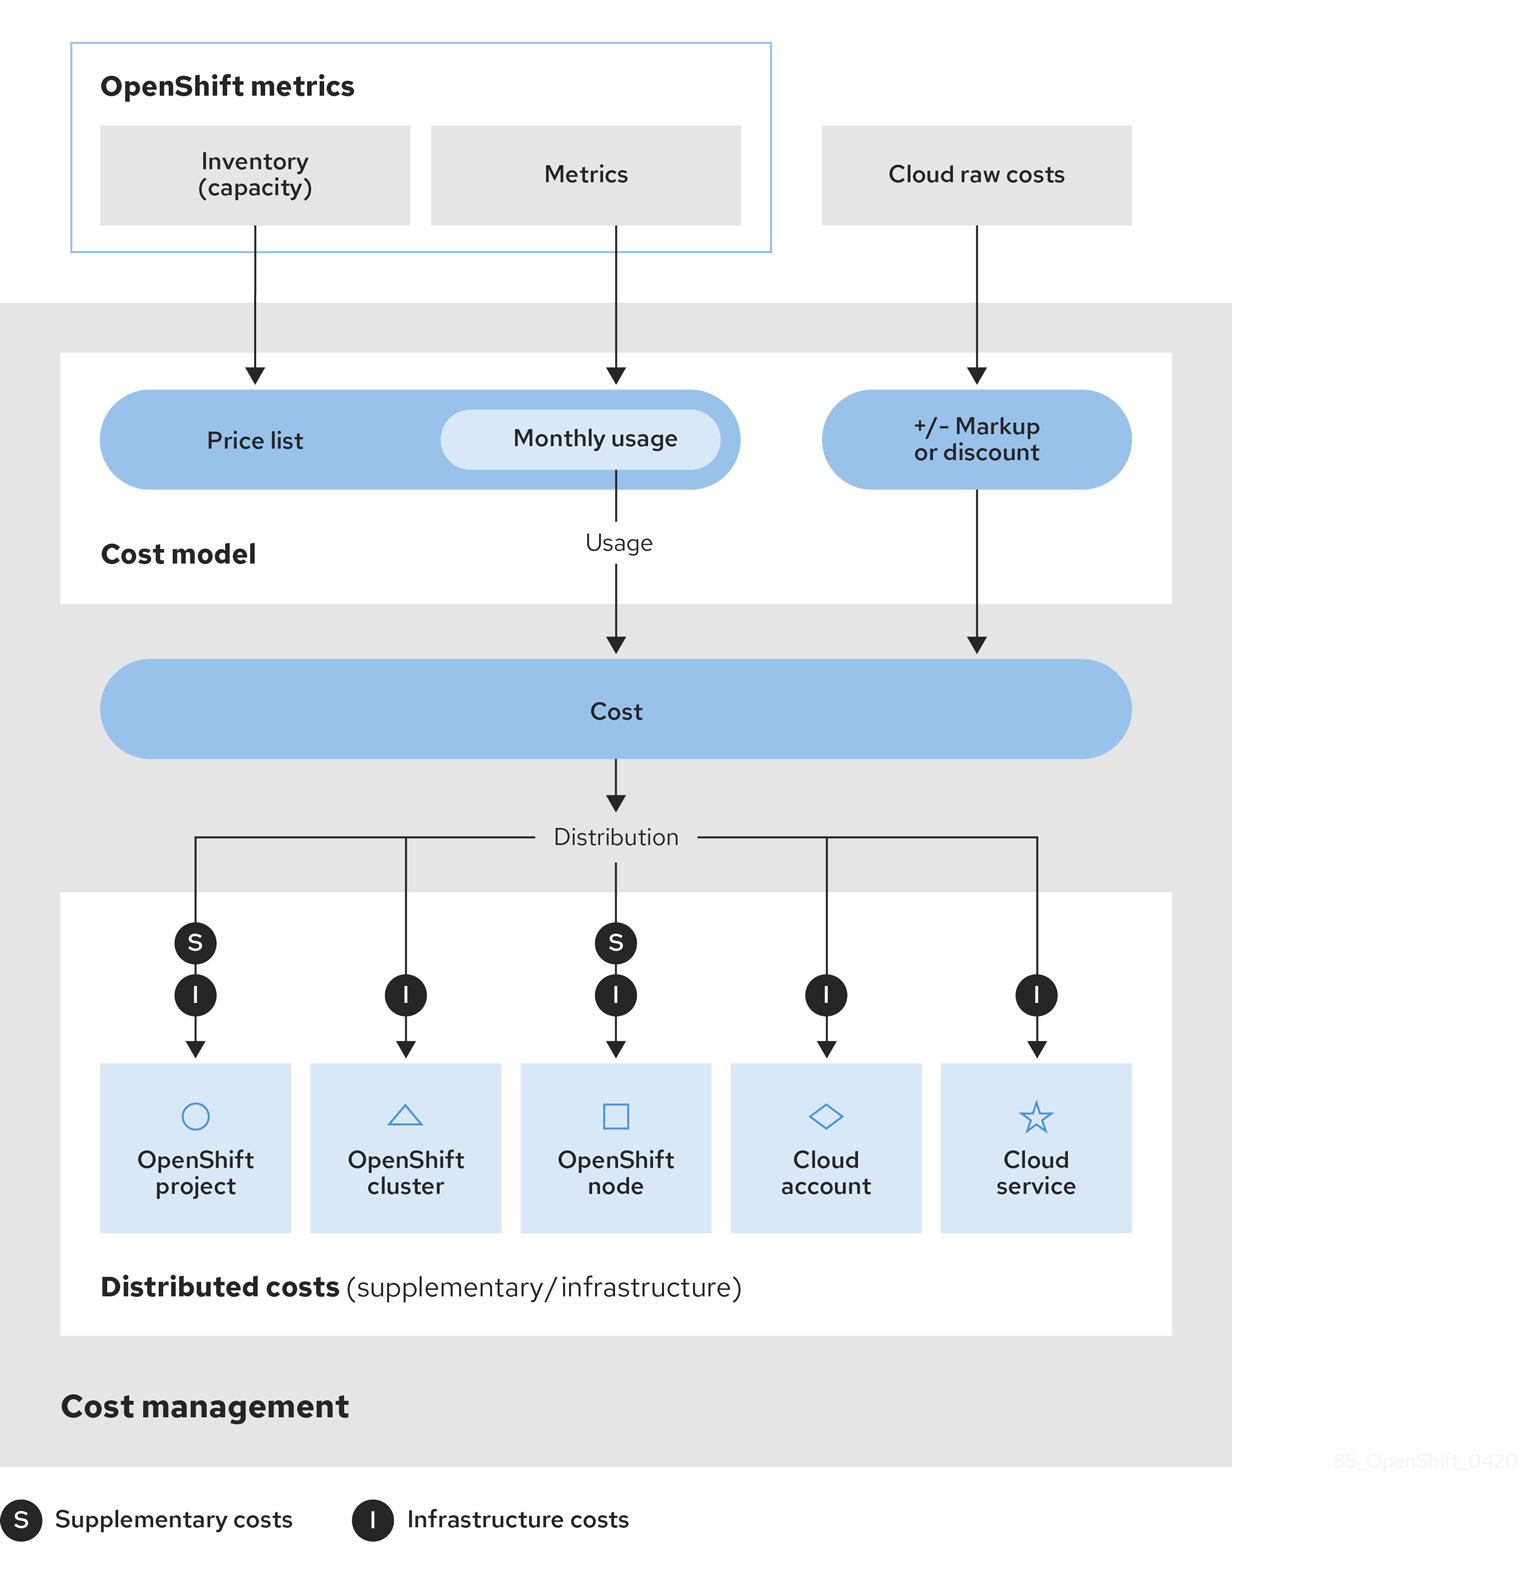 costmodel workflow